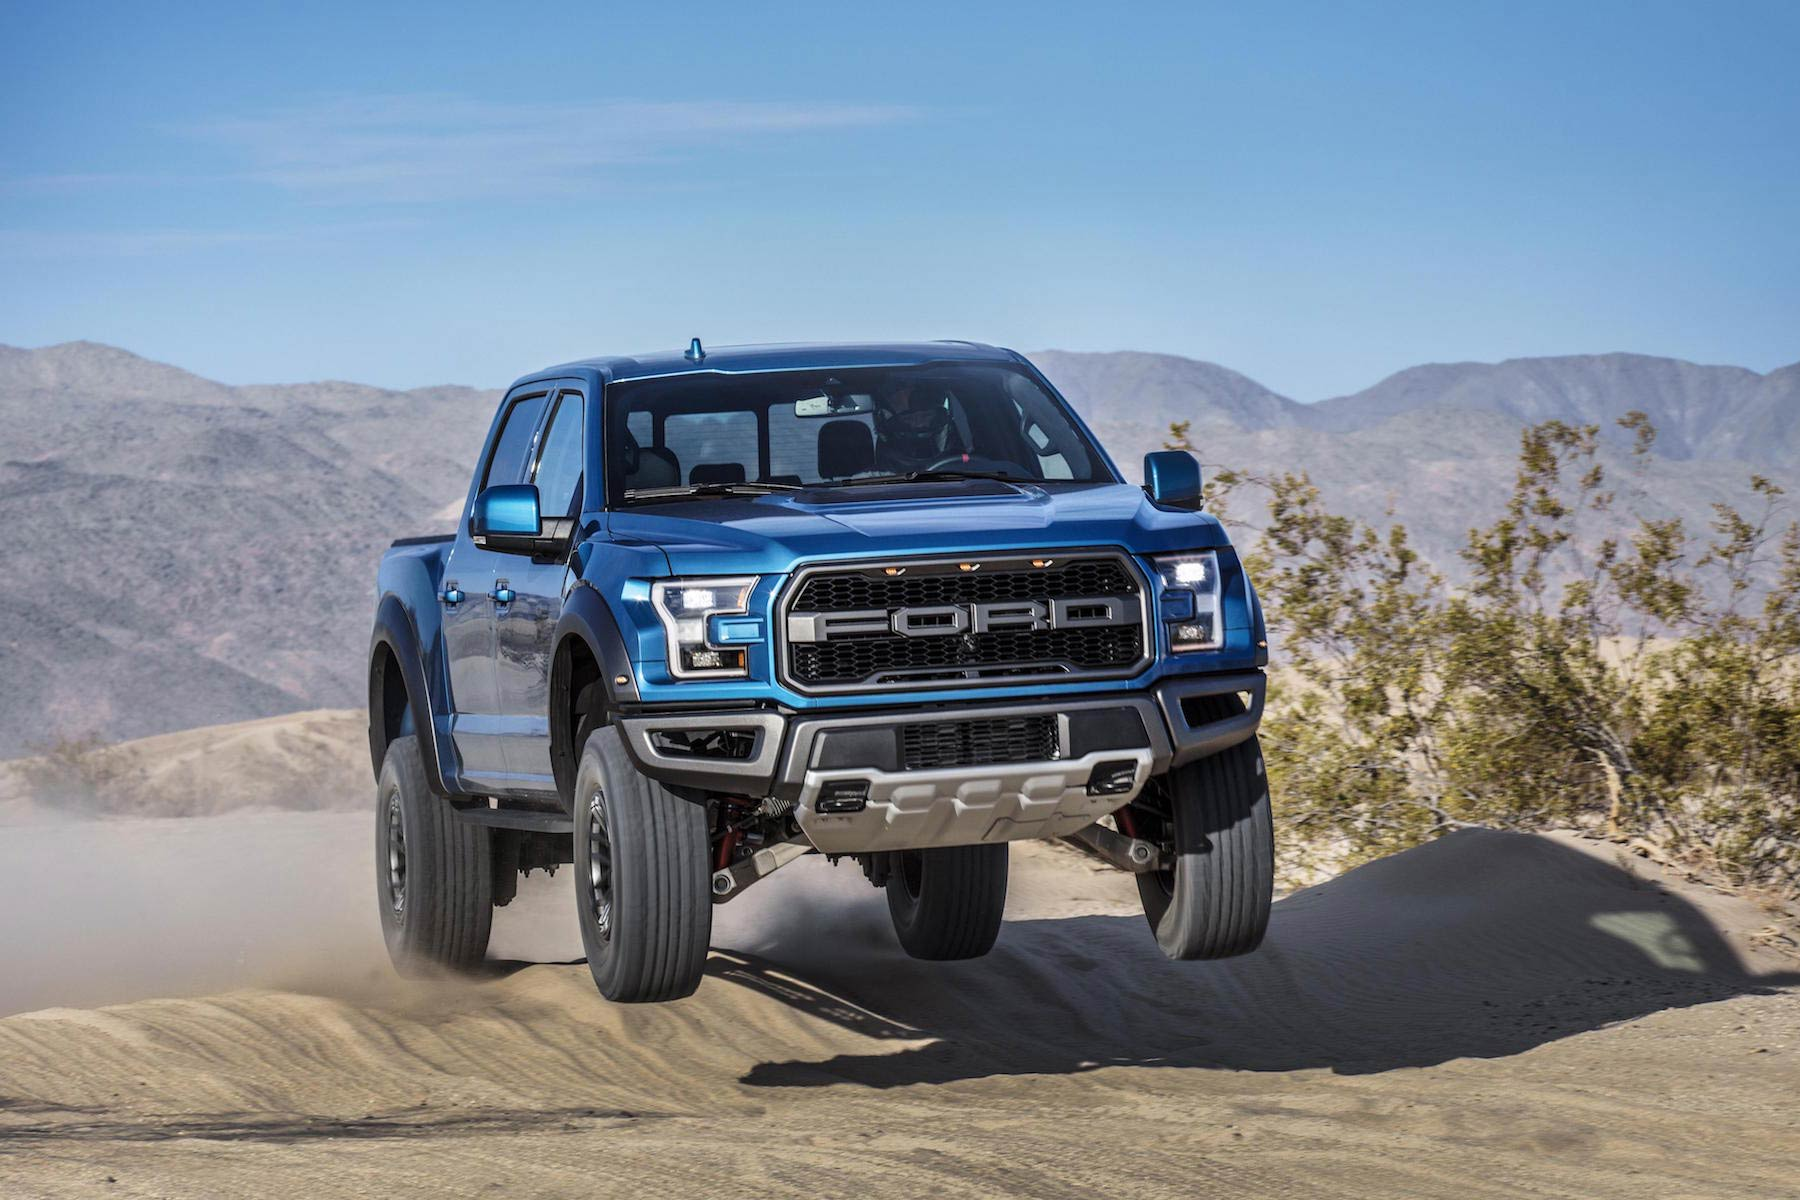 Upgraded 2019 Ford F-150 Raptor